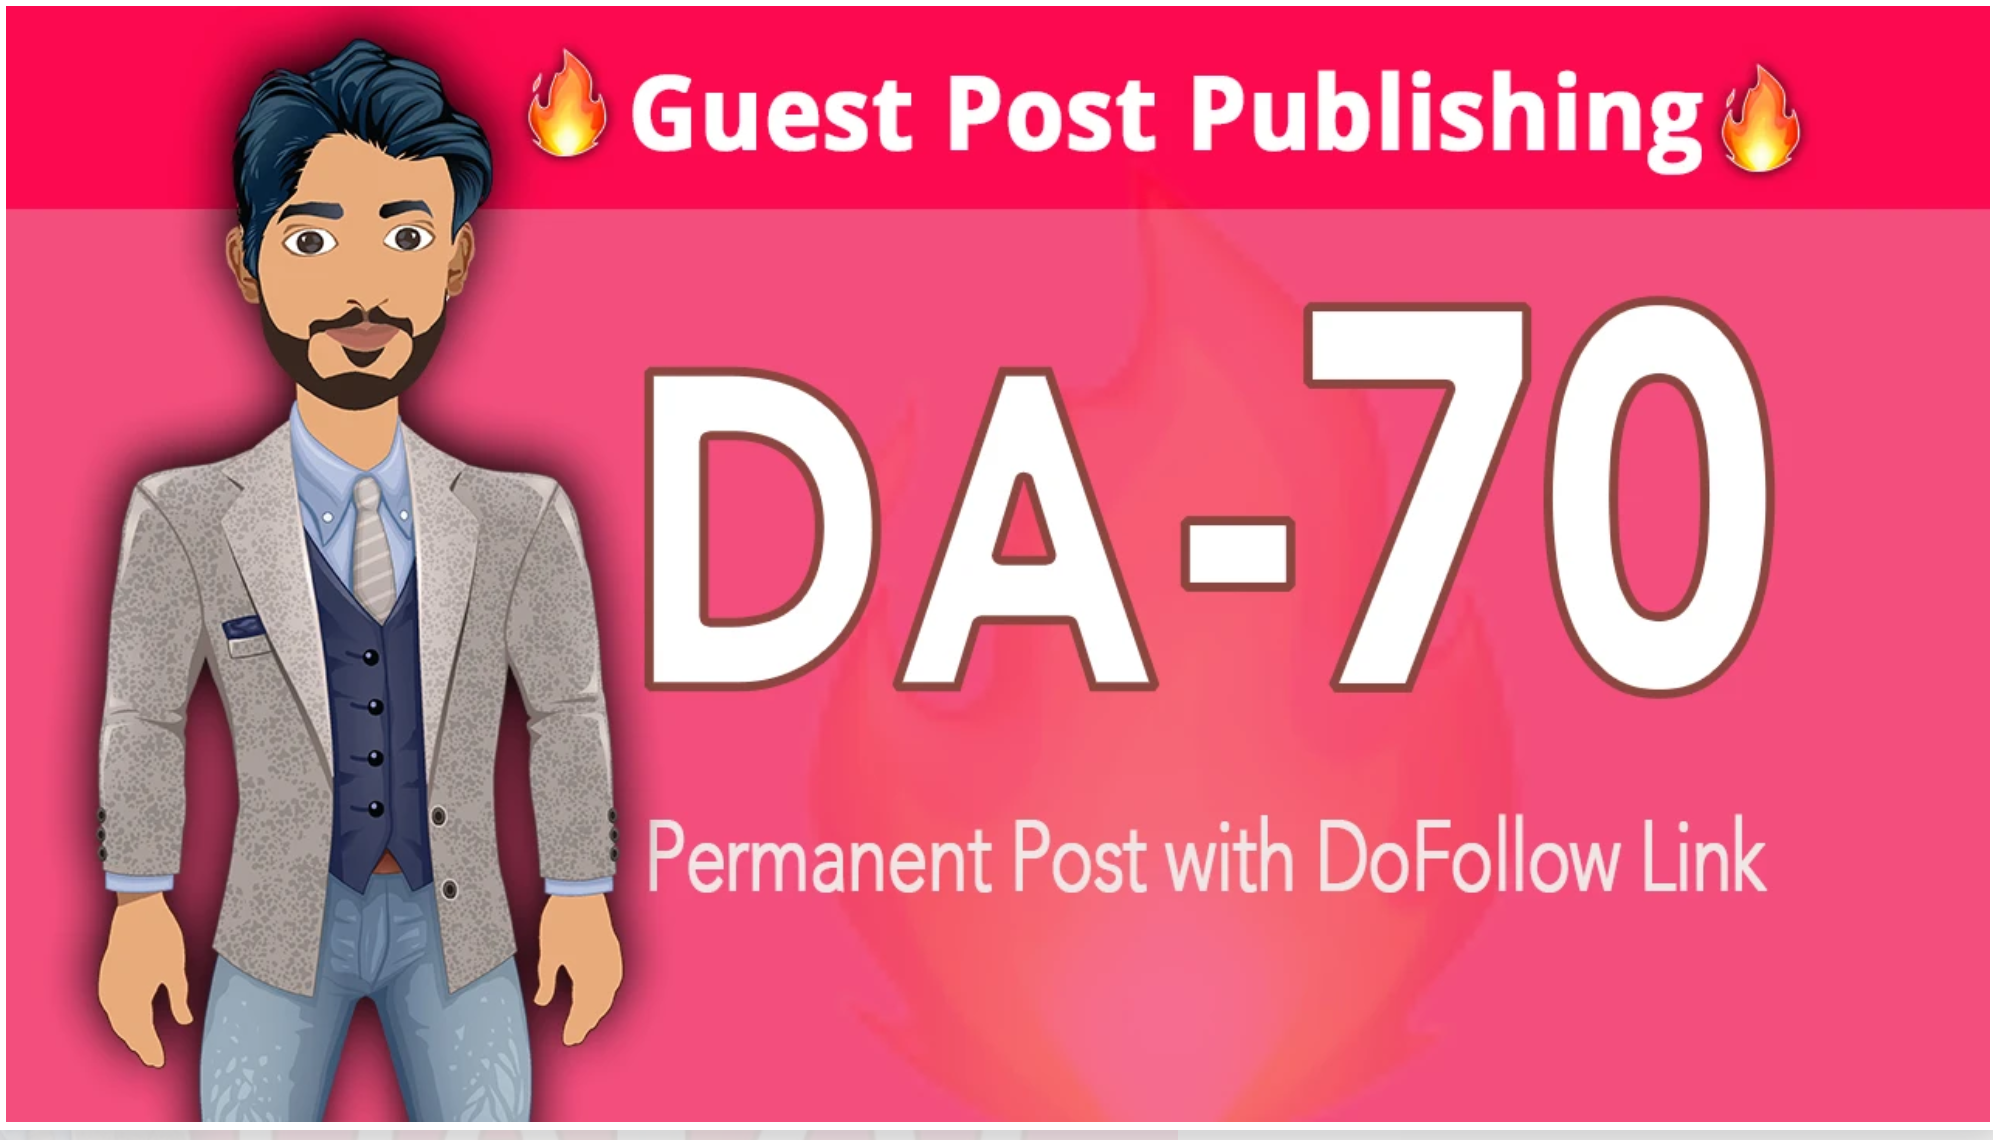 guest post on da 70 news blog with dofollow link